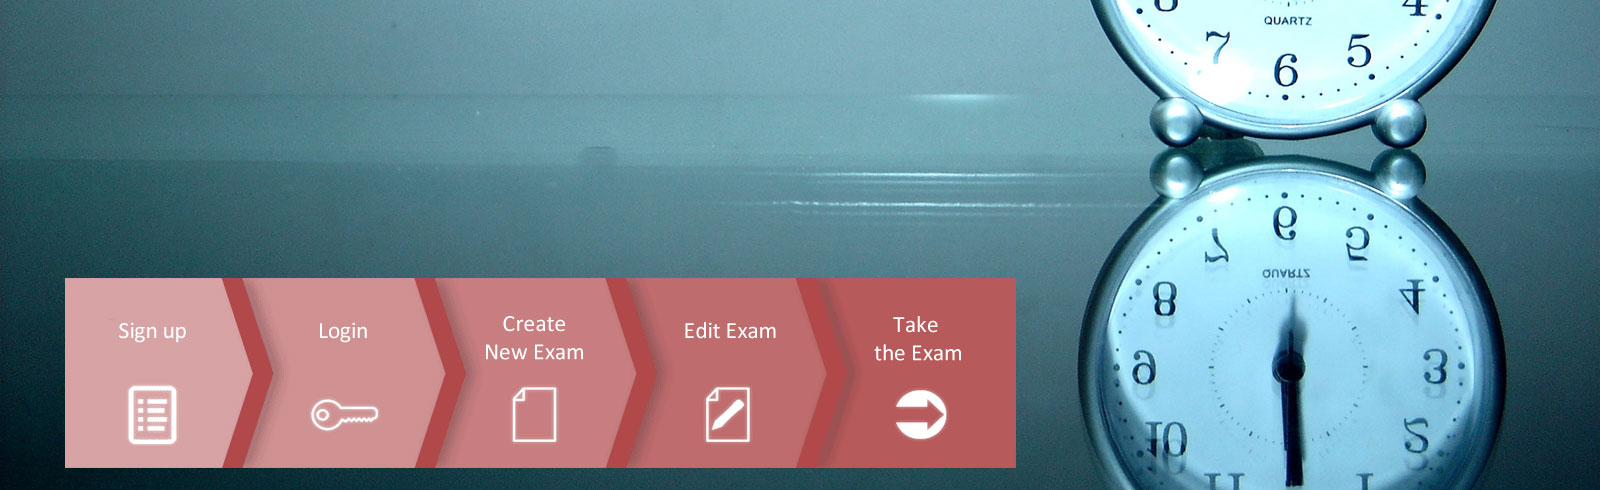 OwnExams.com - Enjoy Your Own Exam in 5 Minutes<br>on Your Phone or PC!